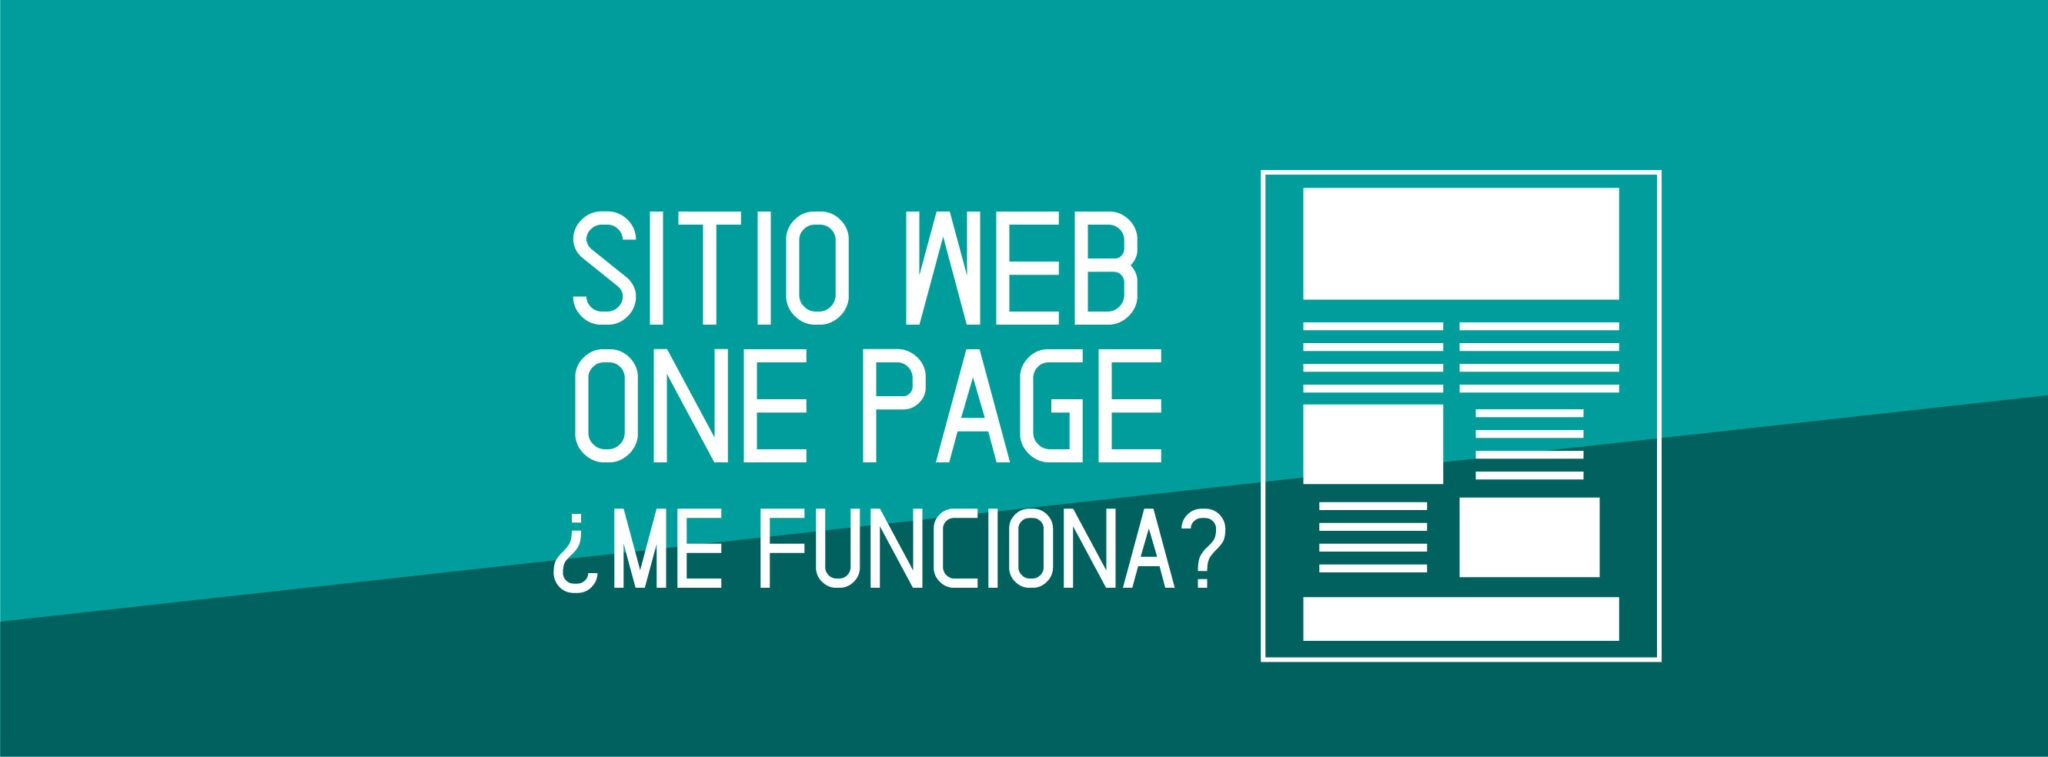 sitio-web-one-page